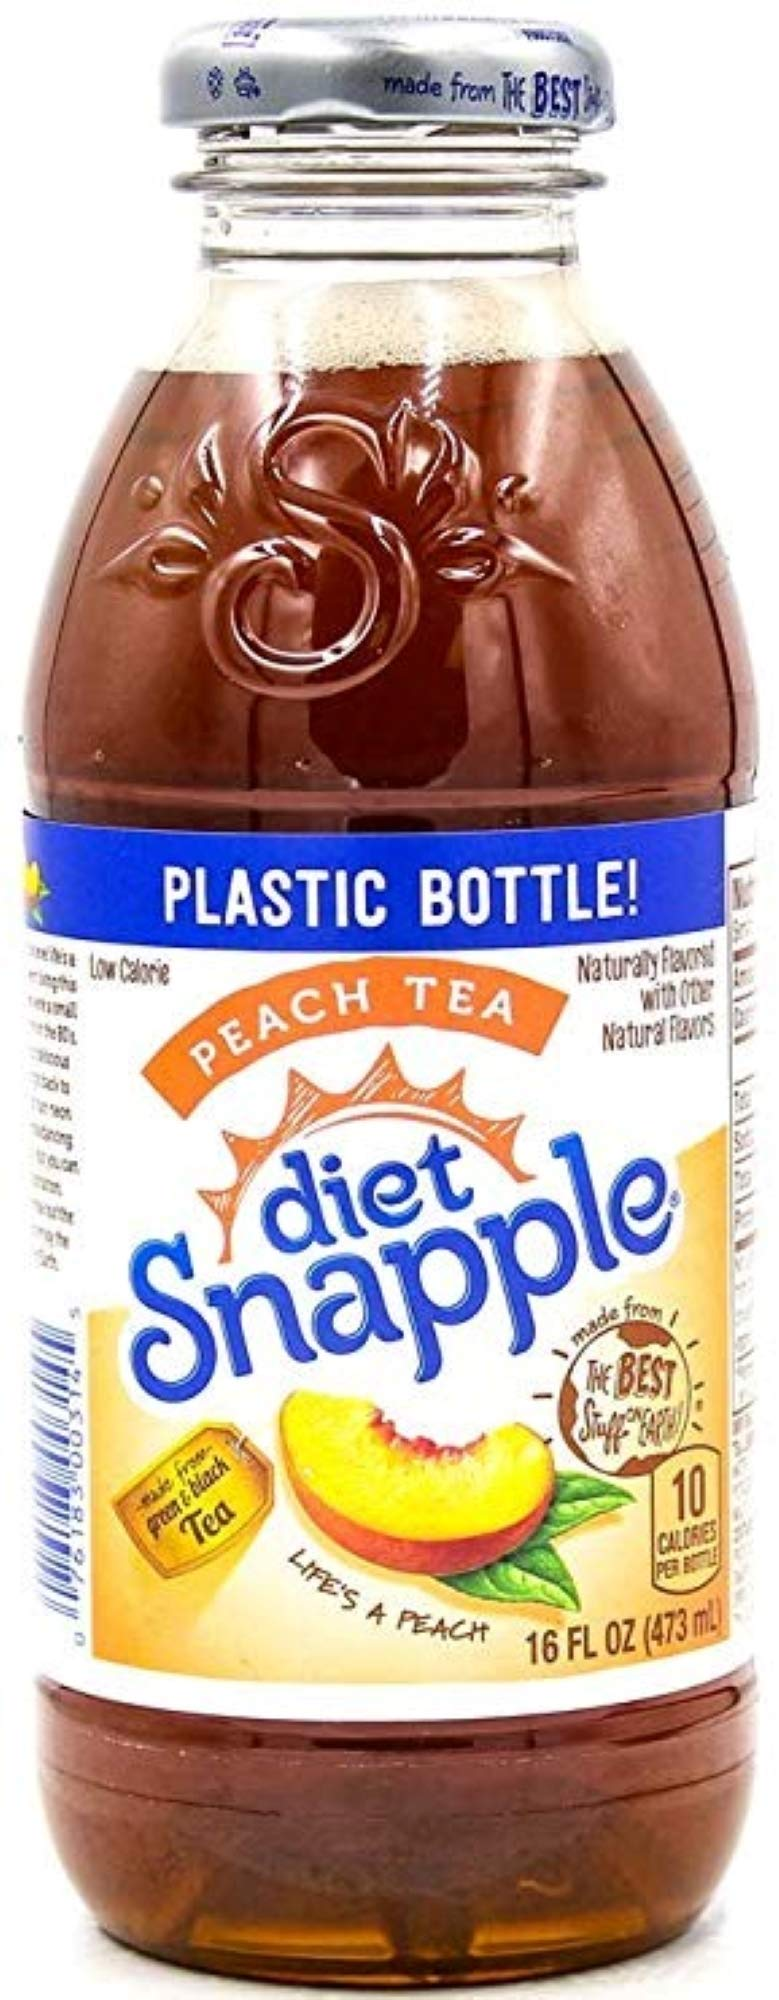 Snapple Diet Peach Iced Tea, 16oz Bottle (Pack of 8, Total of 128 Fl Oz) by Snapple